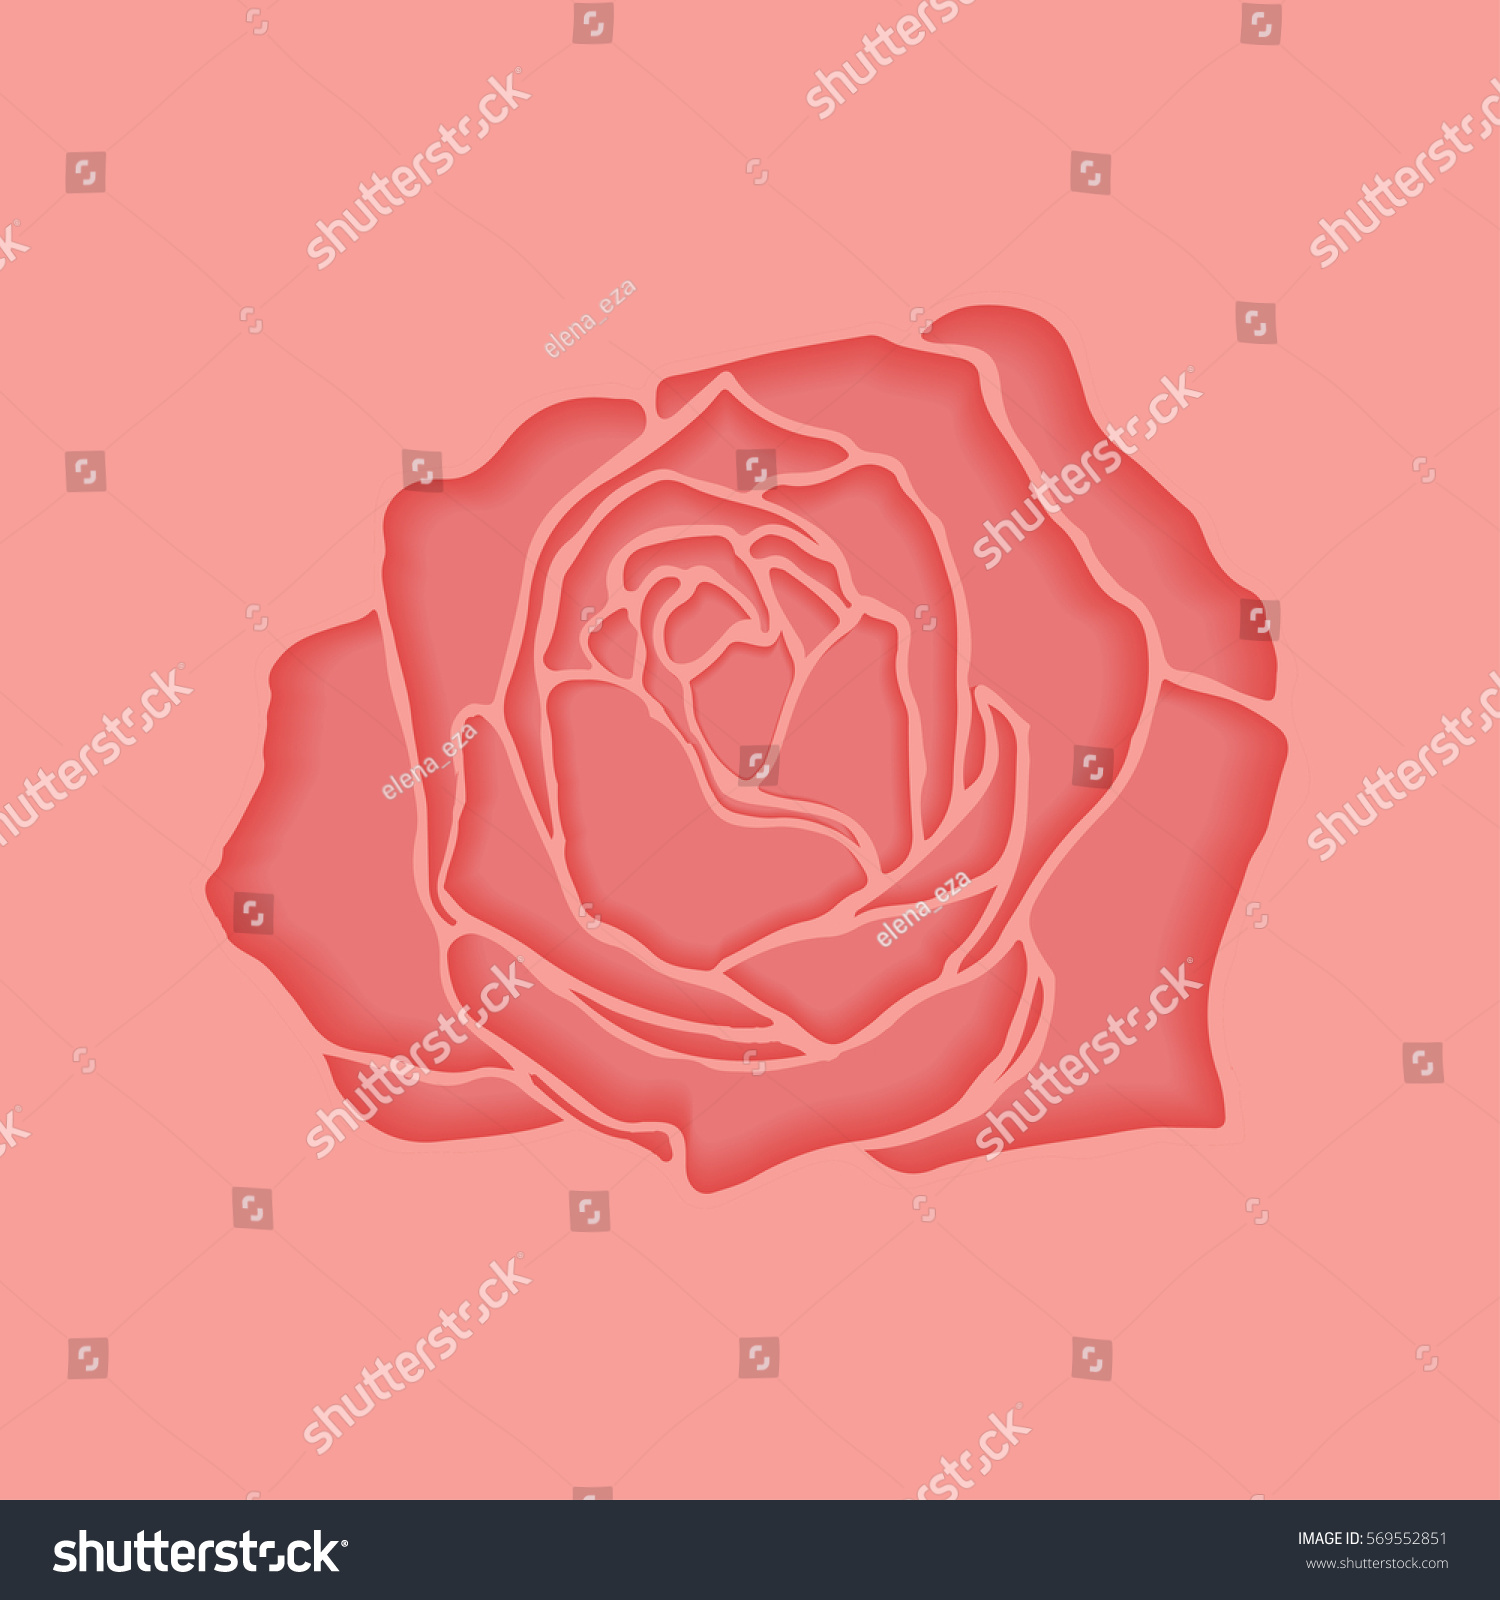 Cut Paper Pink Rose Backgrounds Cards Stock Vector 569552851 ...